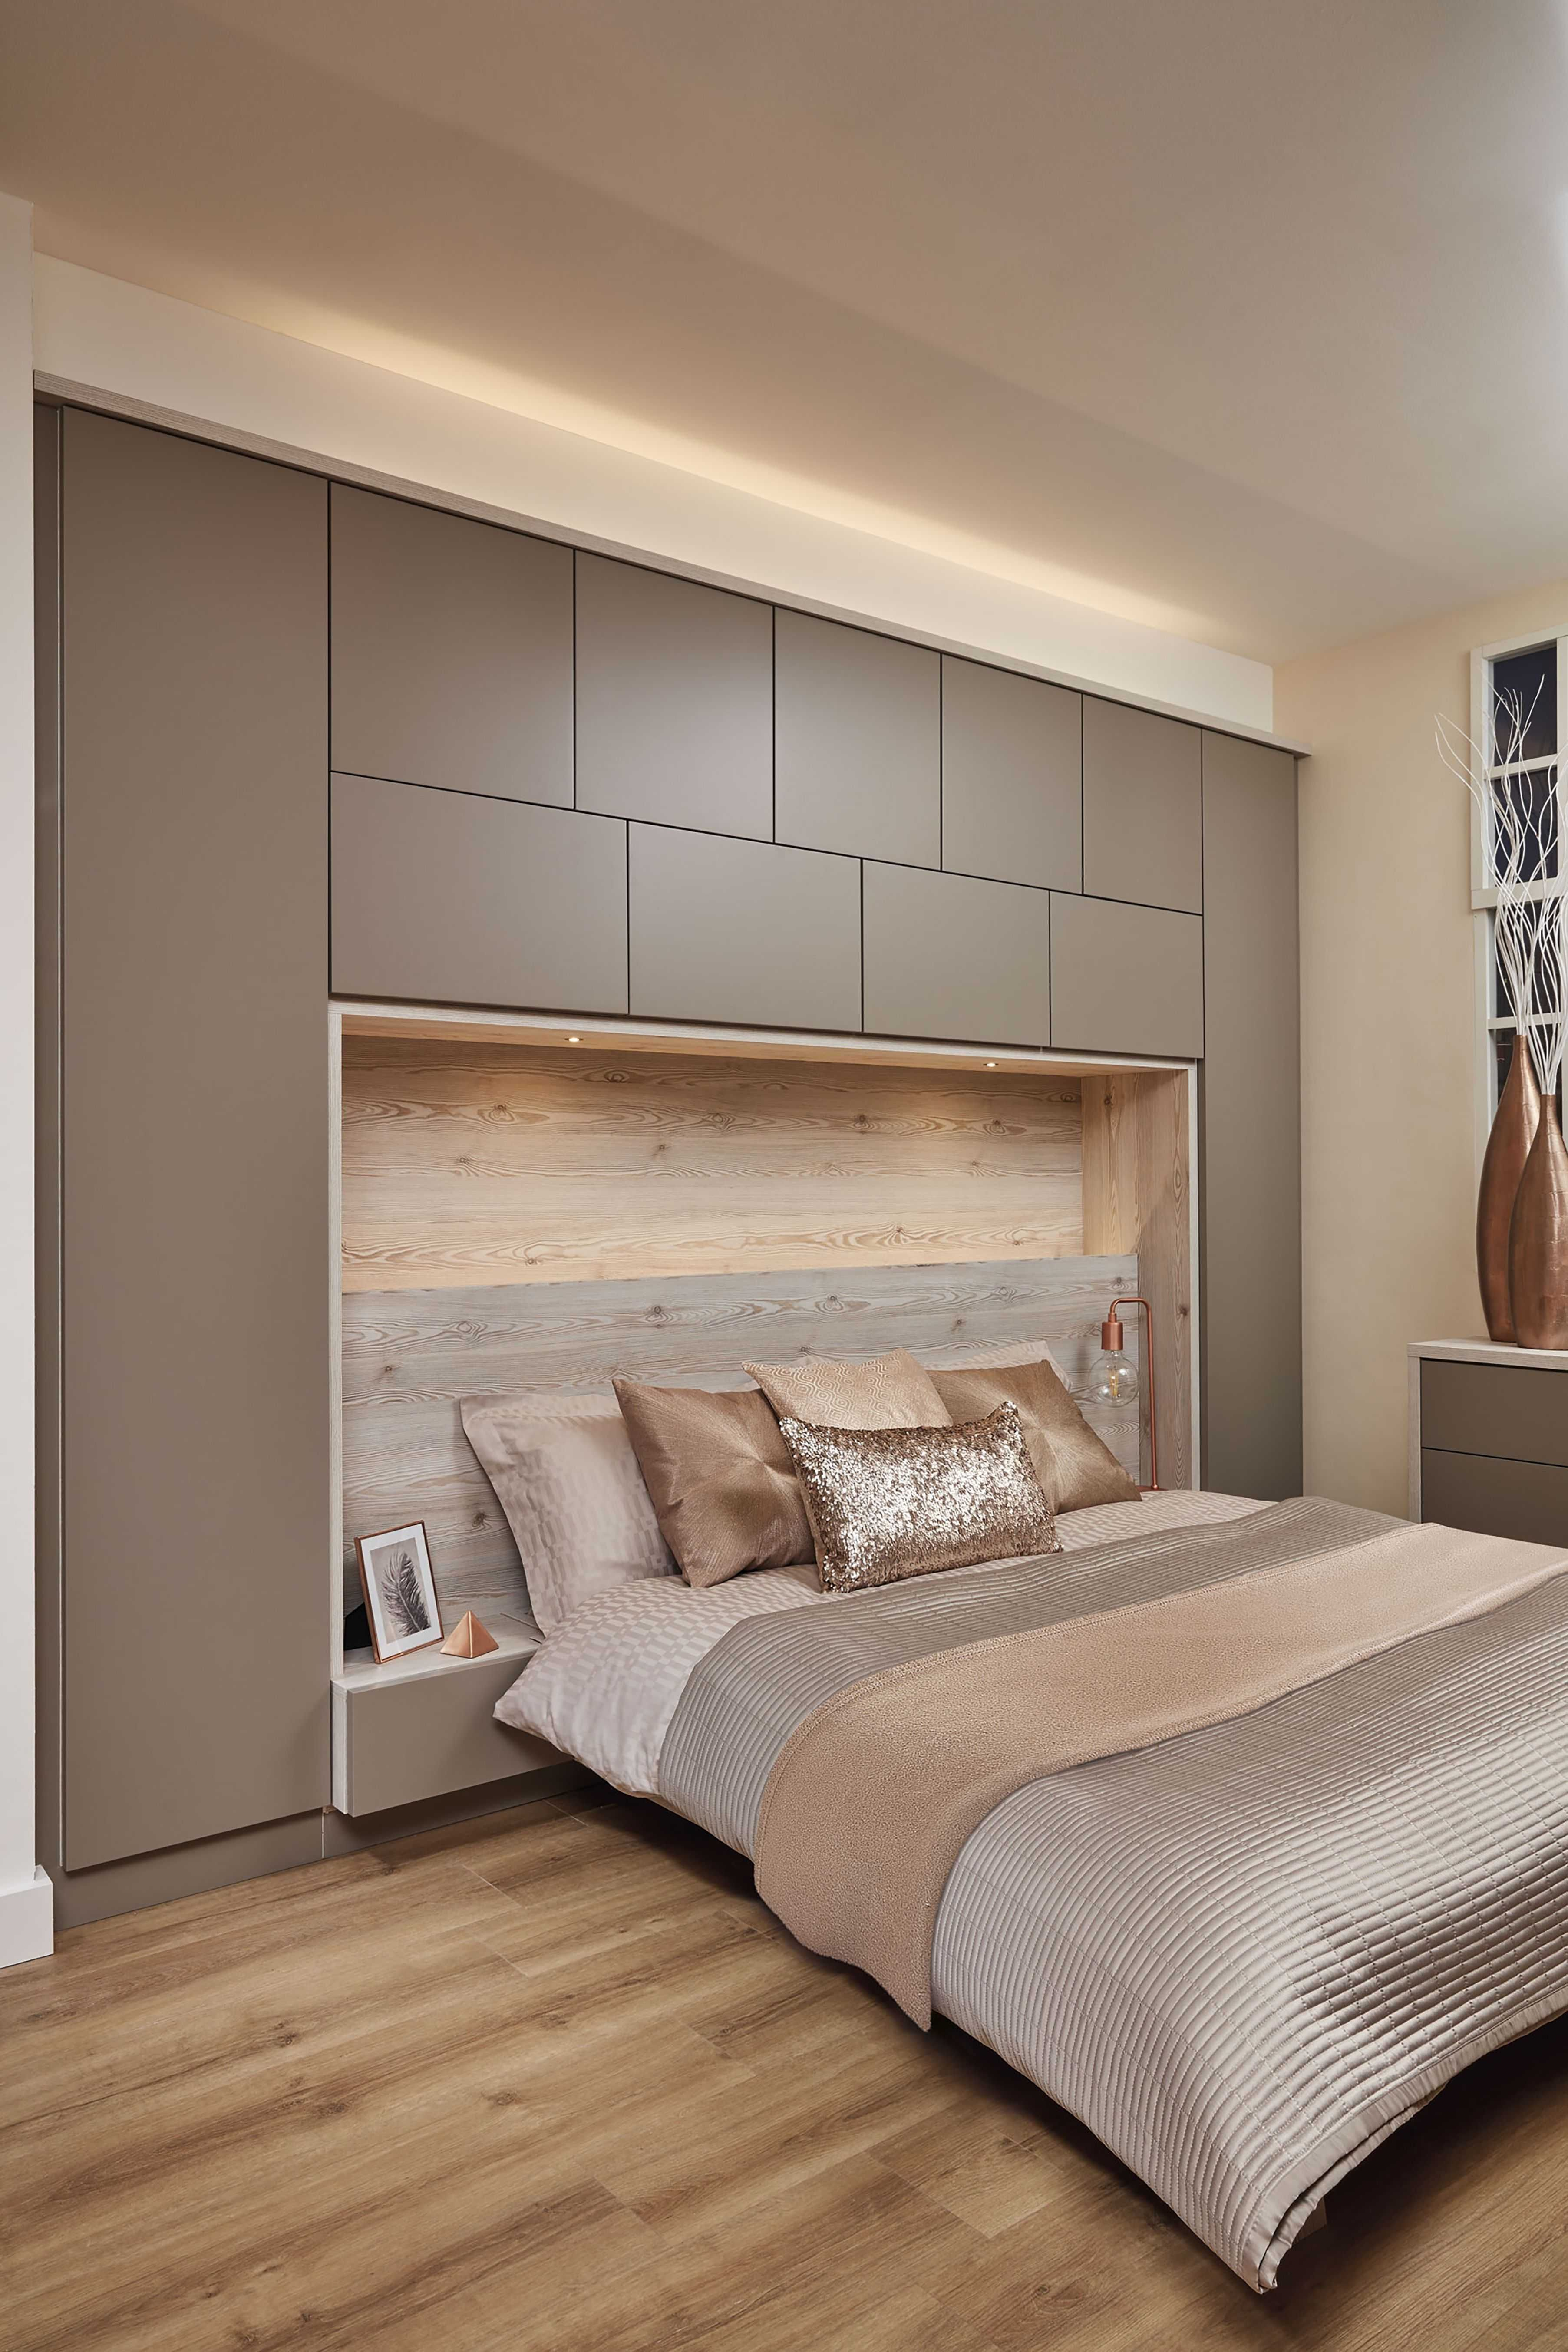 Sleep Limited Tonight In A Cozy Area Courtesy Of Our Collection Of Modern Room Suggestions Di Modern Master Bedroom Design Small Master Bedroom Simple Bedroom